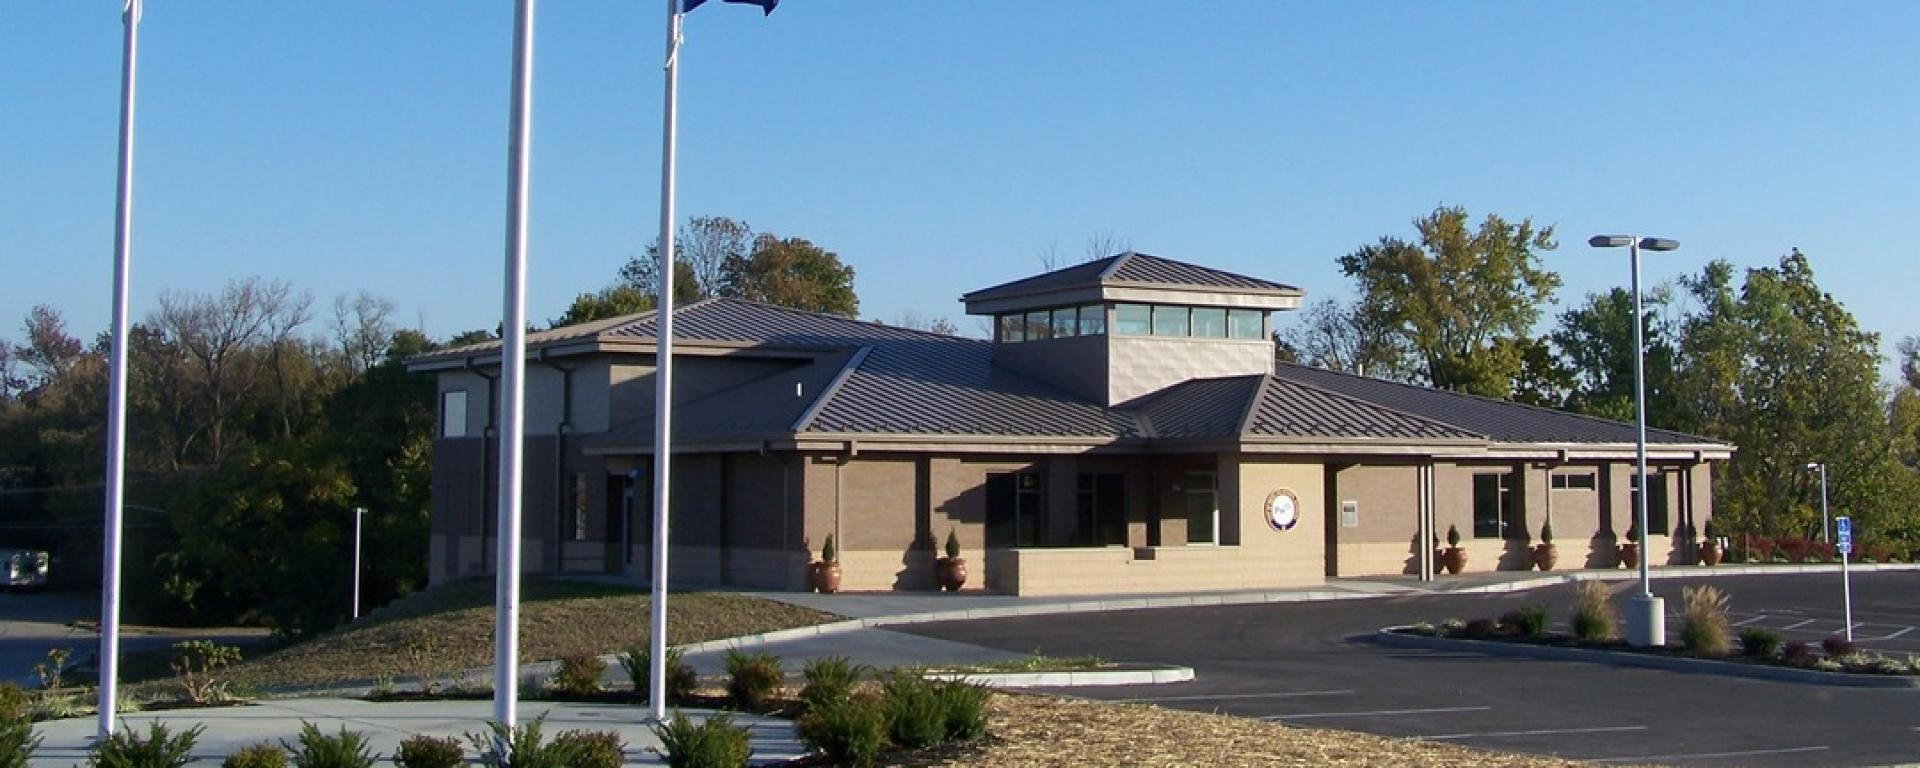 Building view of Highland Heights Municipal Building